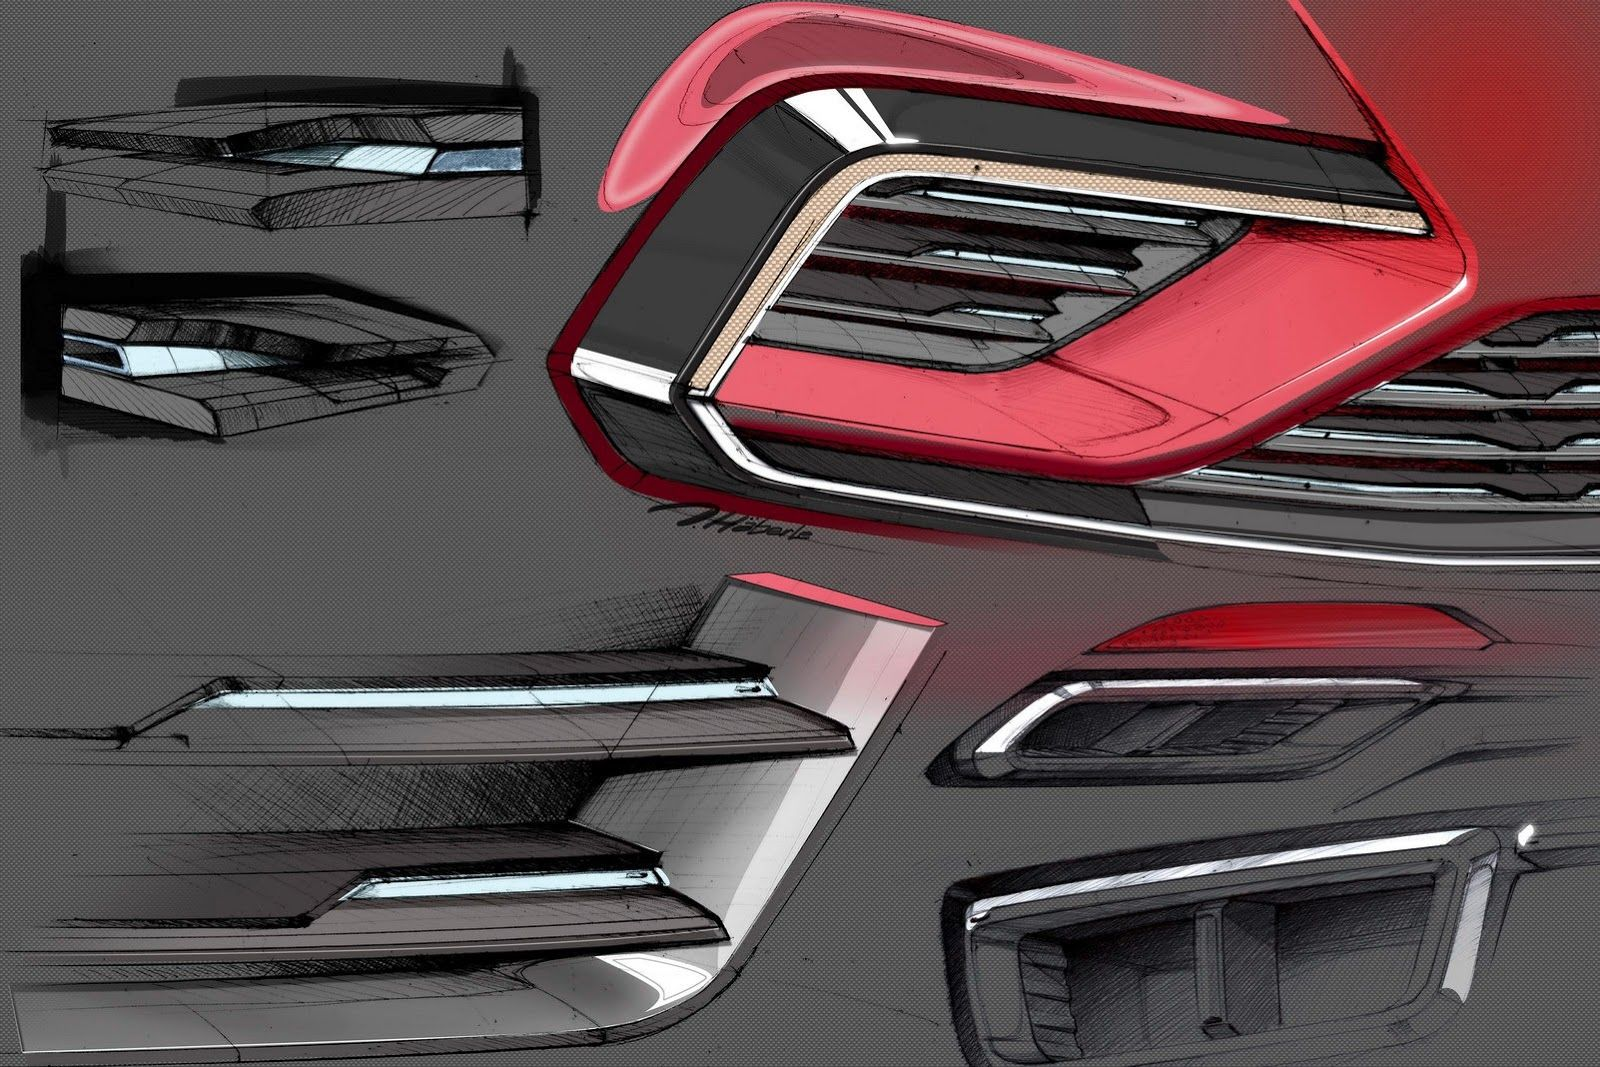 Volkswagen S New Midsize Coupe Sounds Like The Rumored Jetta Cc With Images Industrial Design Sketch Automotive Design Design Motivation